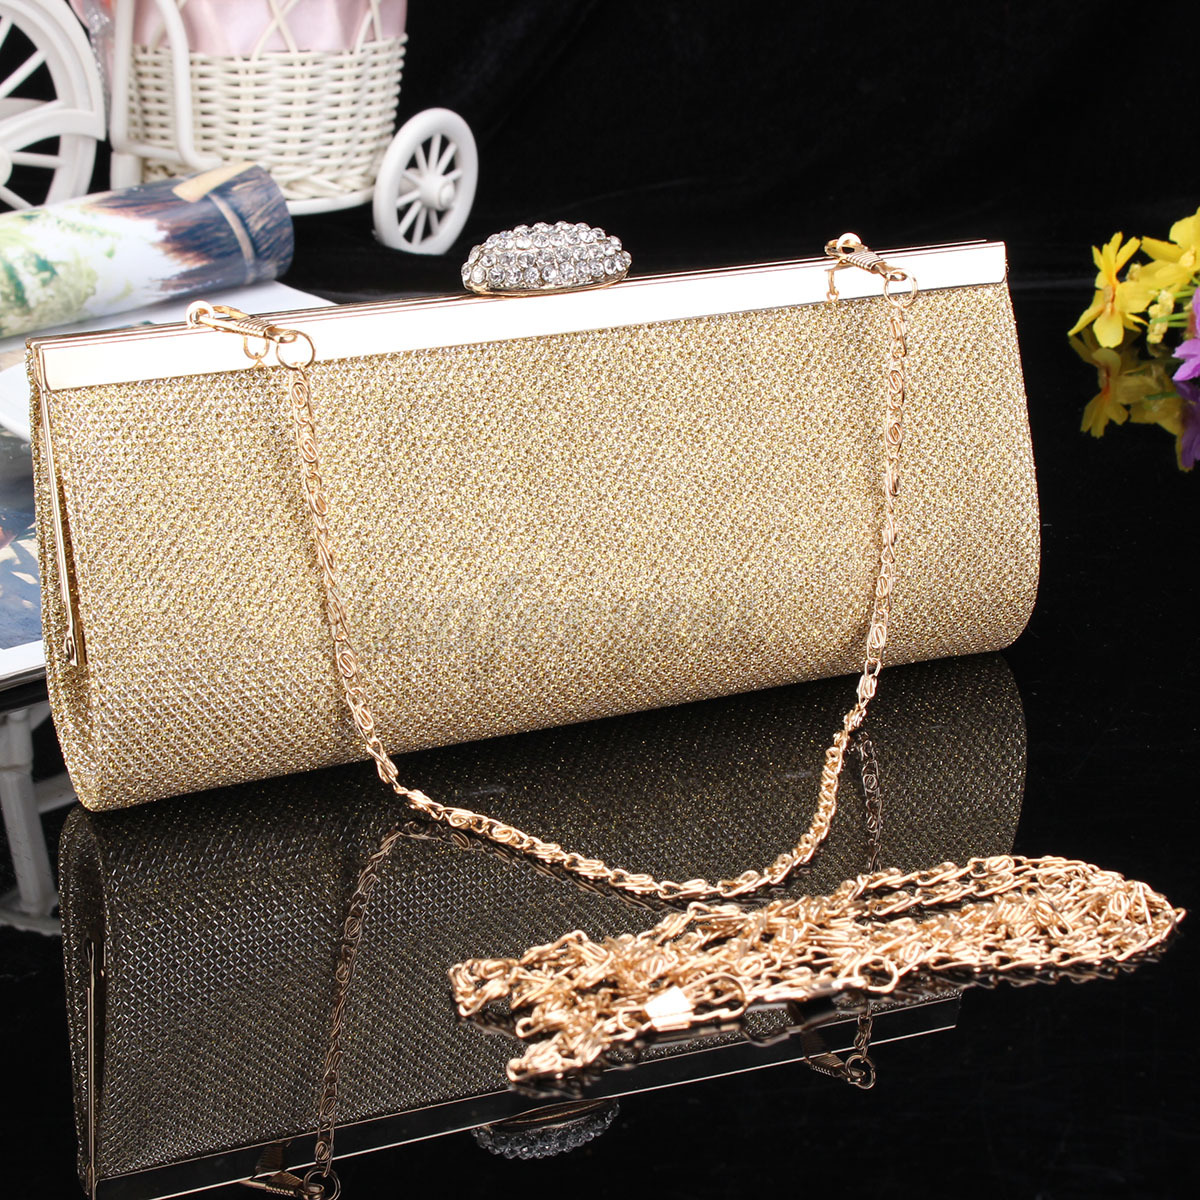 WOMEN SPARKLY GLITTER CLUTCH BAG WEDDING BRIDAL PROM PARTY EVENING HANDBAG PURSE